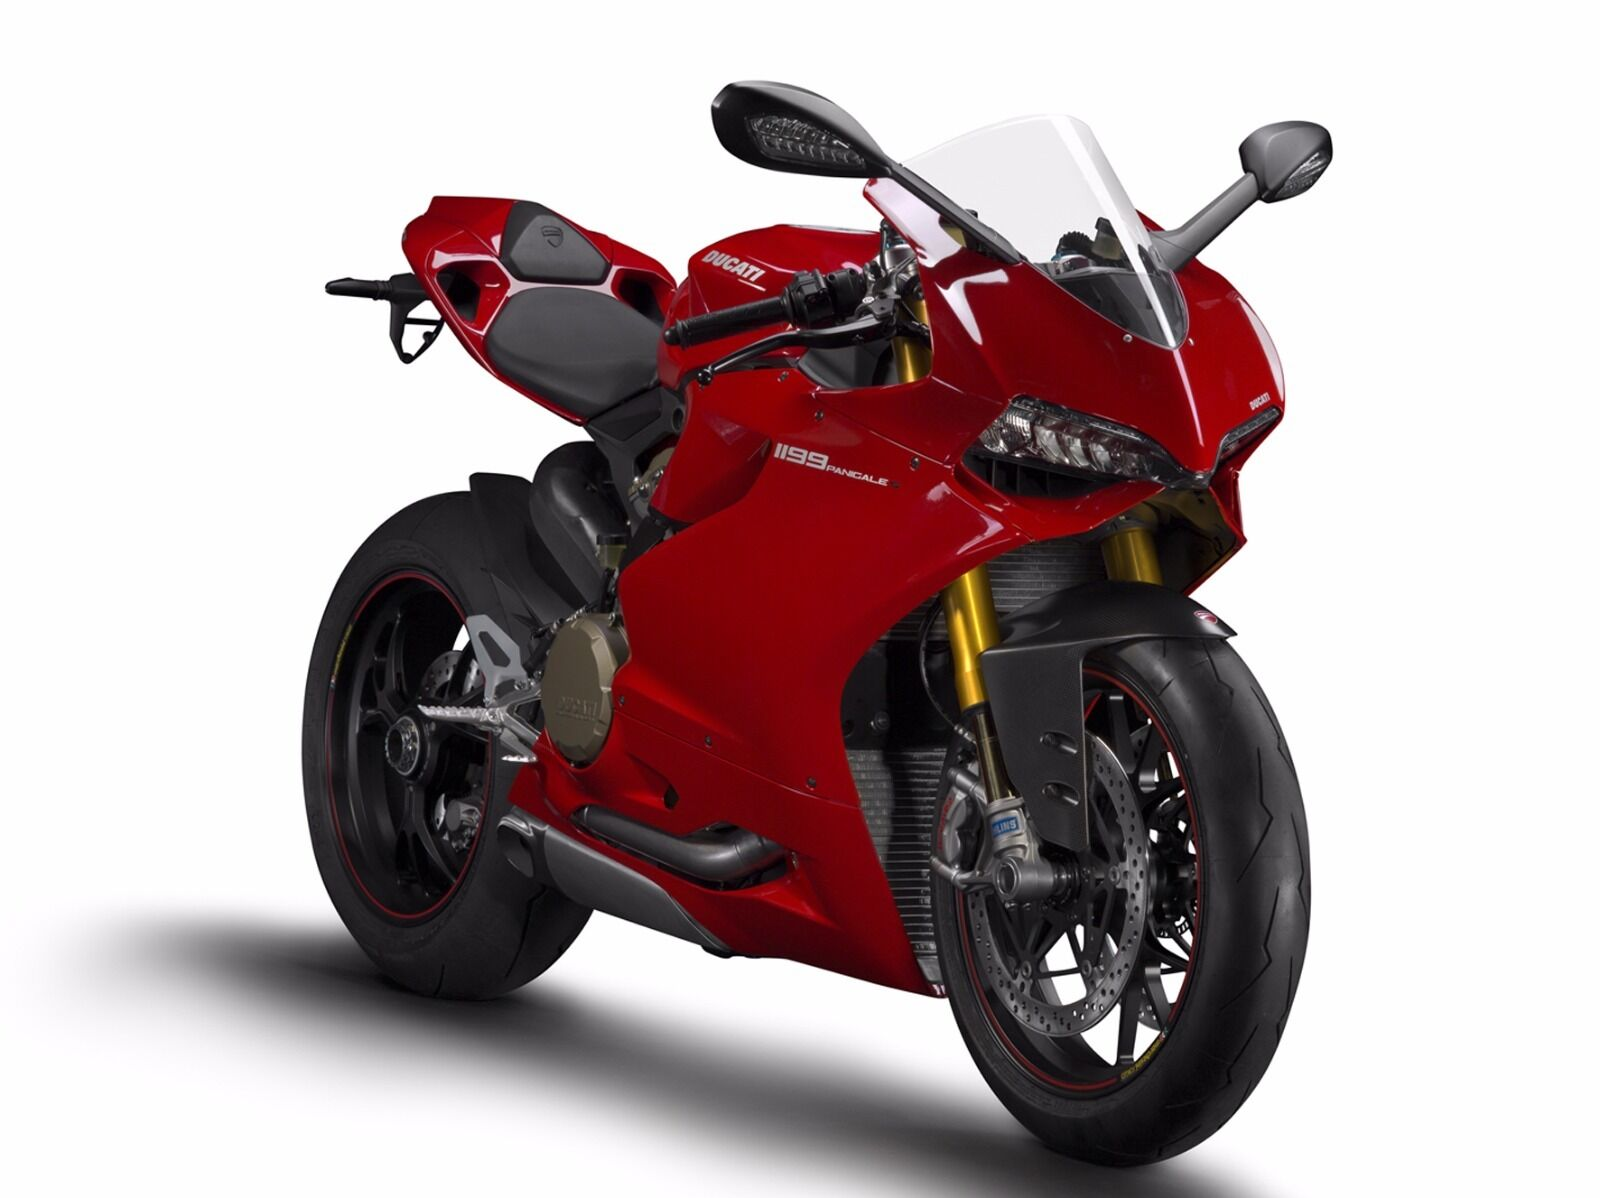 Ducati 1199 Panigale S & S Abs Workshop Service Repair Manual On Cd 2012 -  2014 1 of 1Only 2 available ...